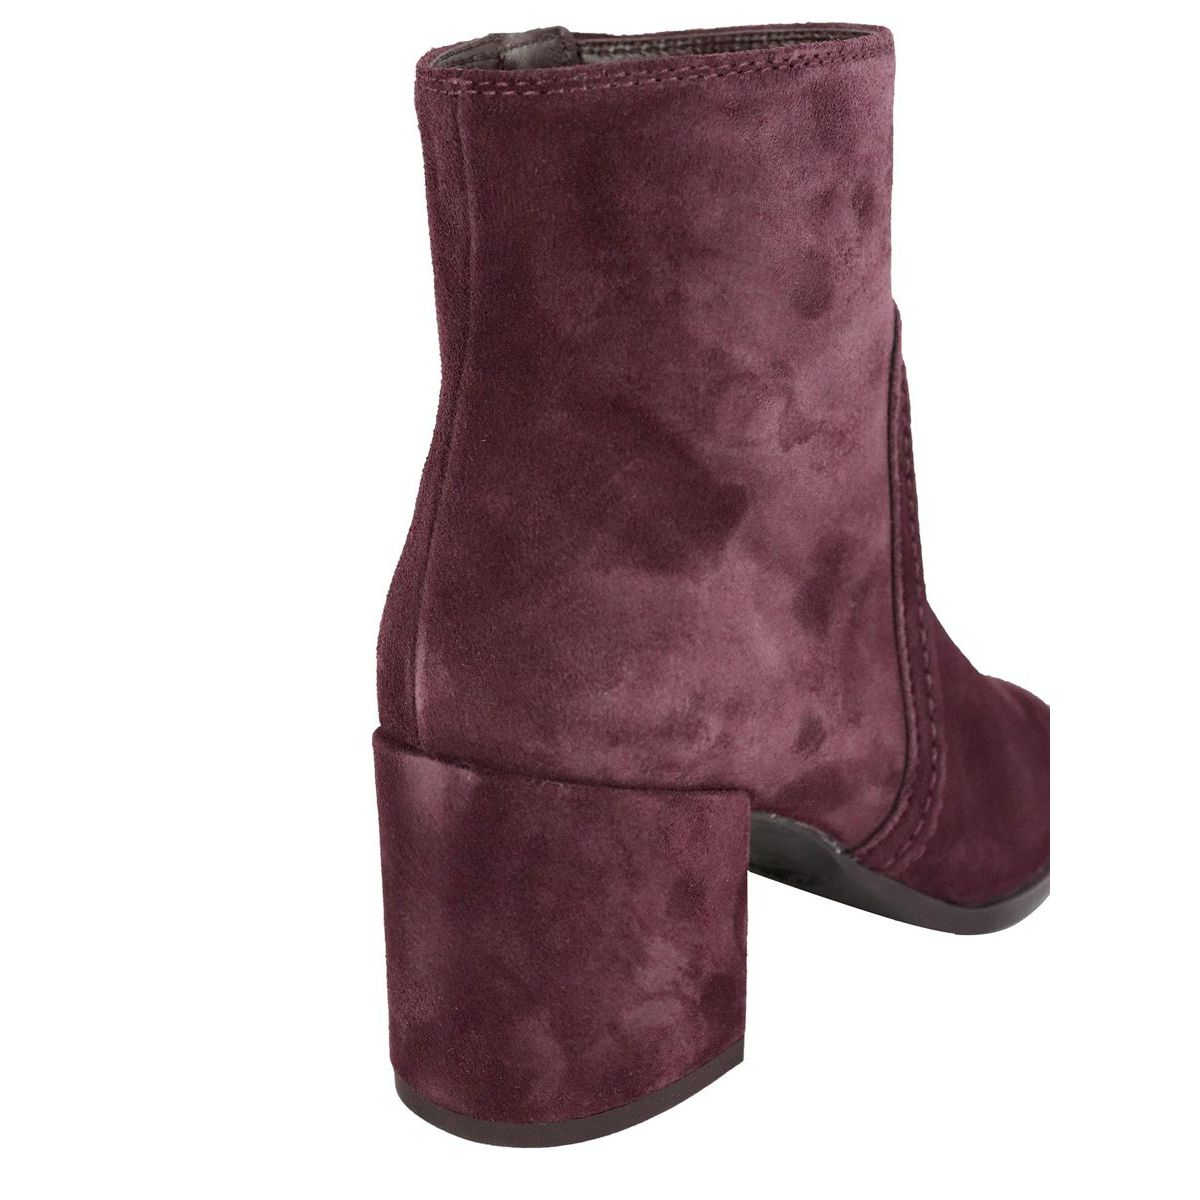 83B leather ankle boot Burgundy Tod's